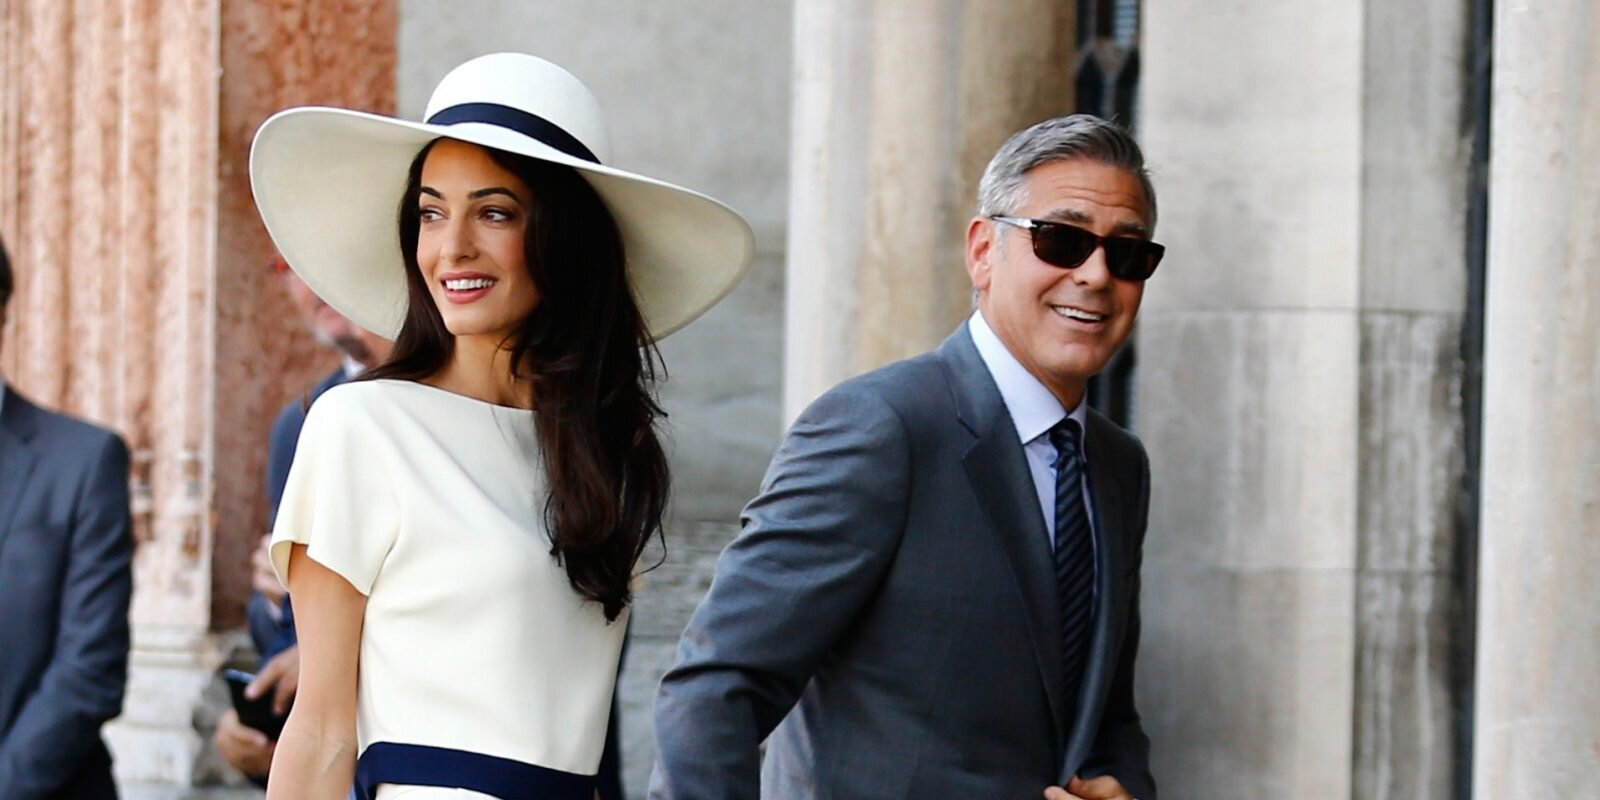 Amal Clooney Just Revealed Her Favorite George Clooney Rom-Com—and It's Not What You Would Expect